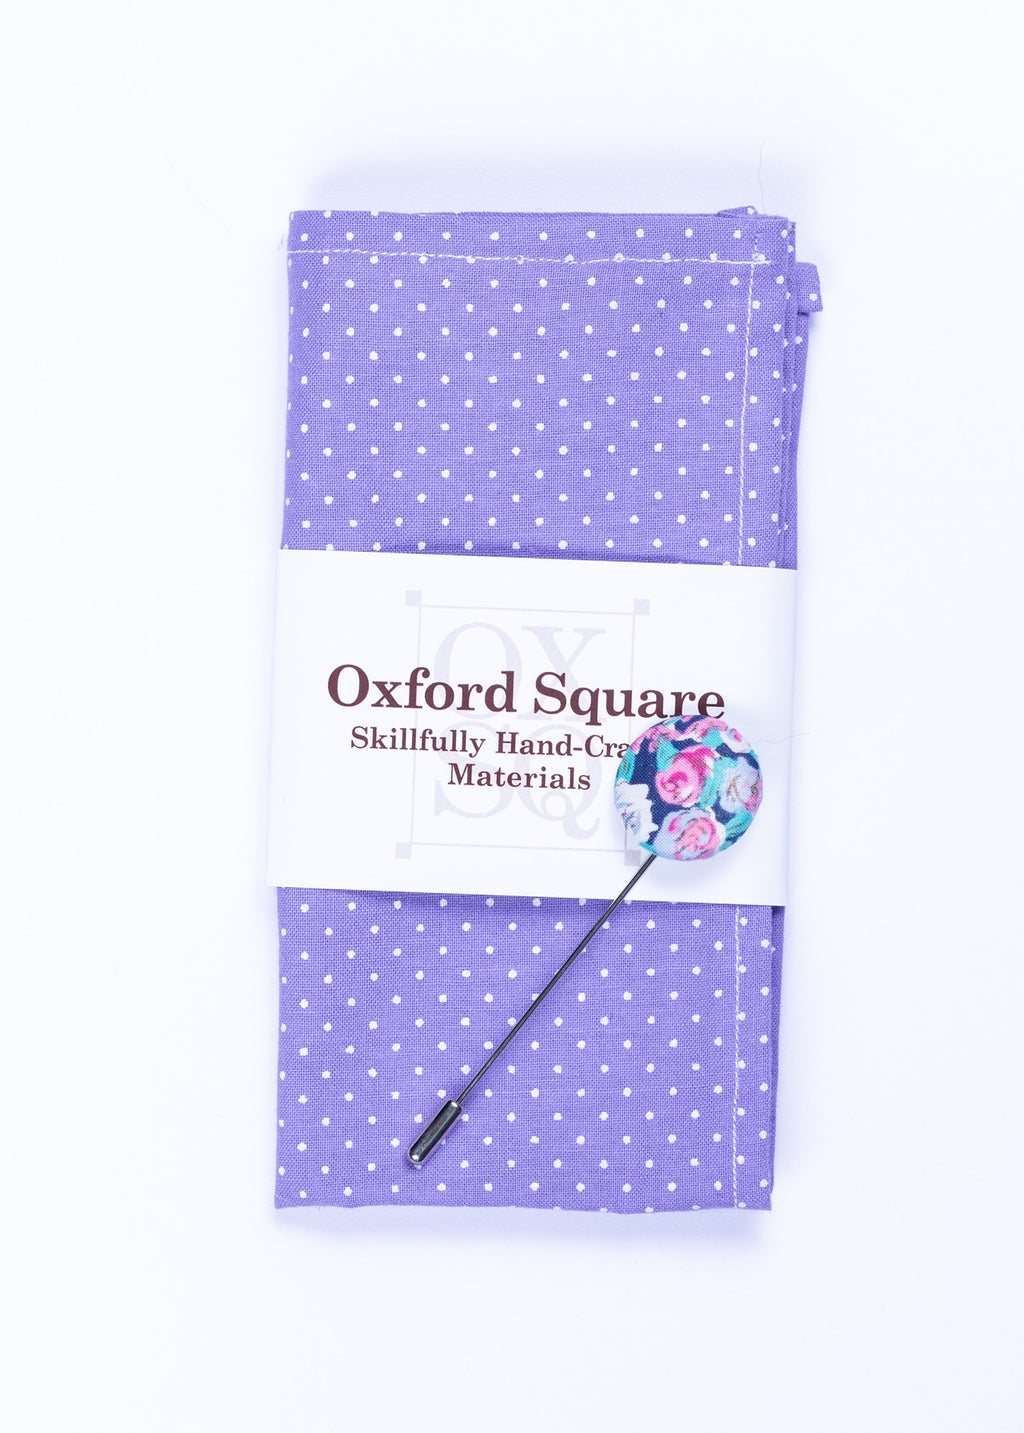 purple polka dot pocket square and lapel pin pack - Oxford Square